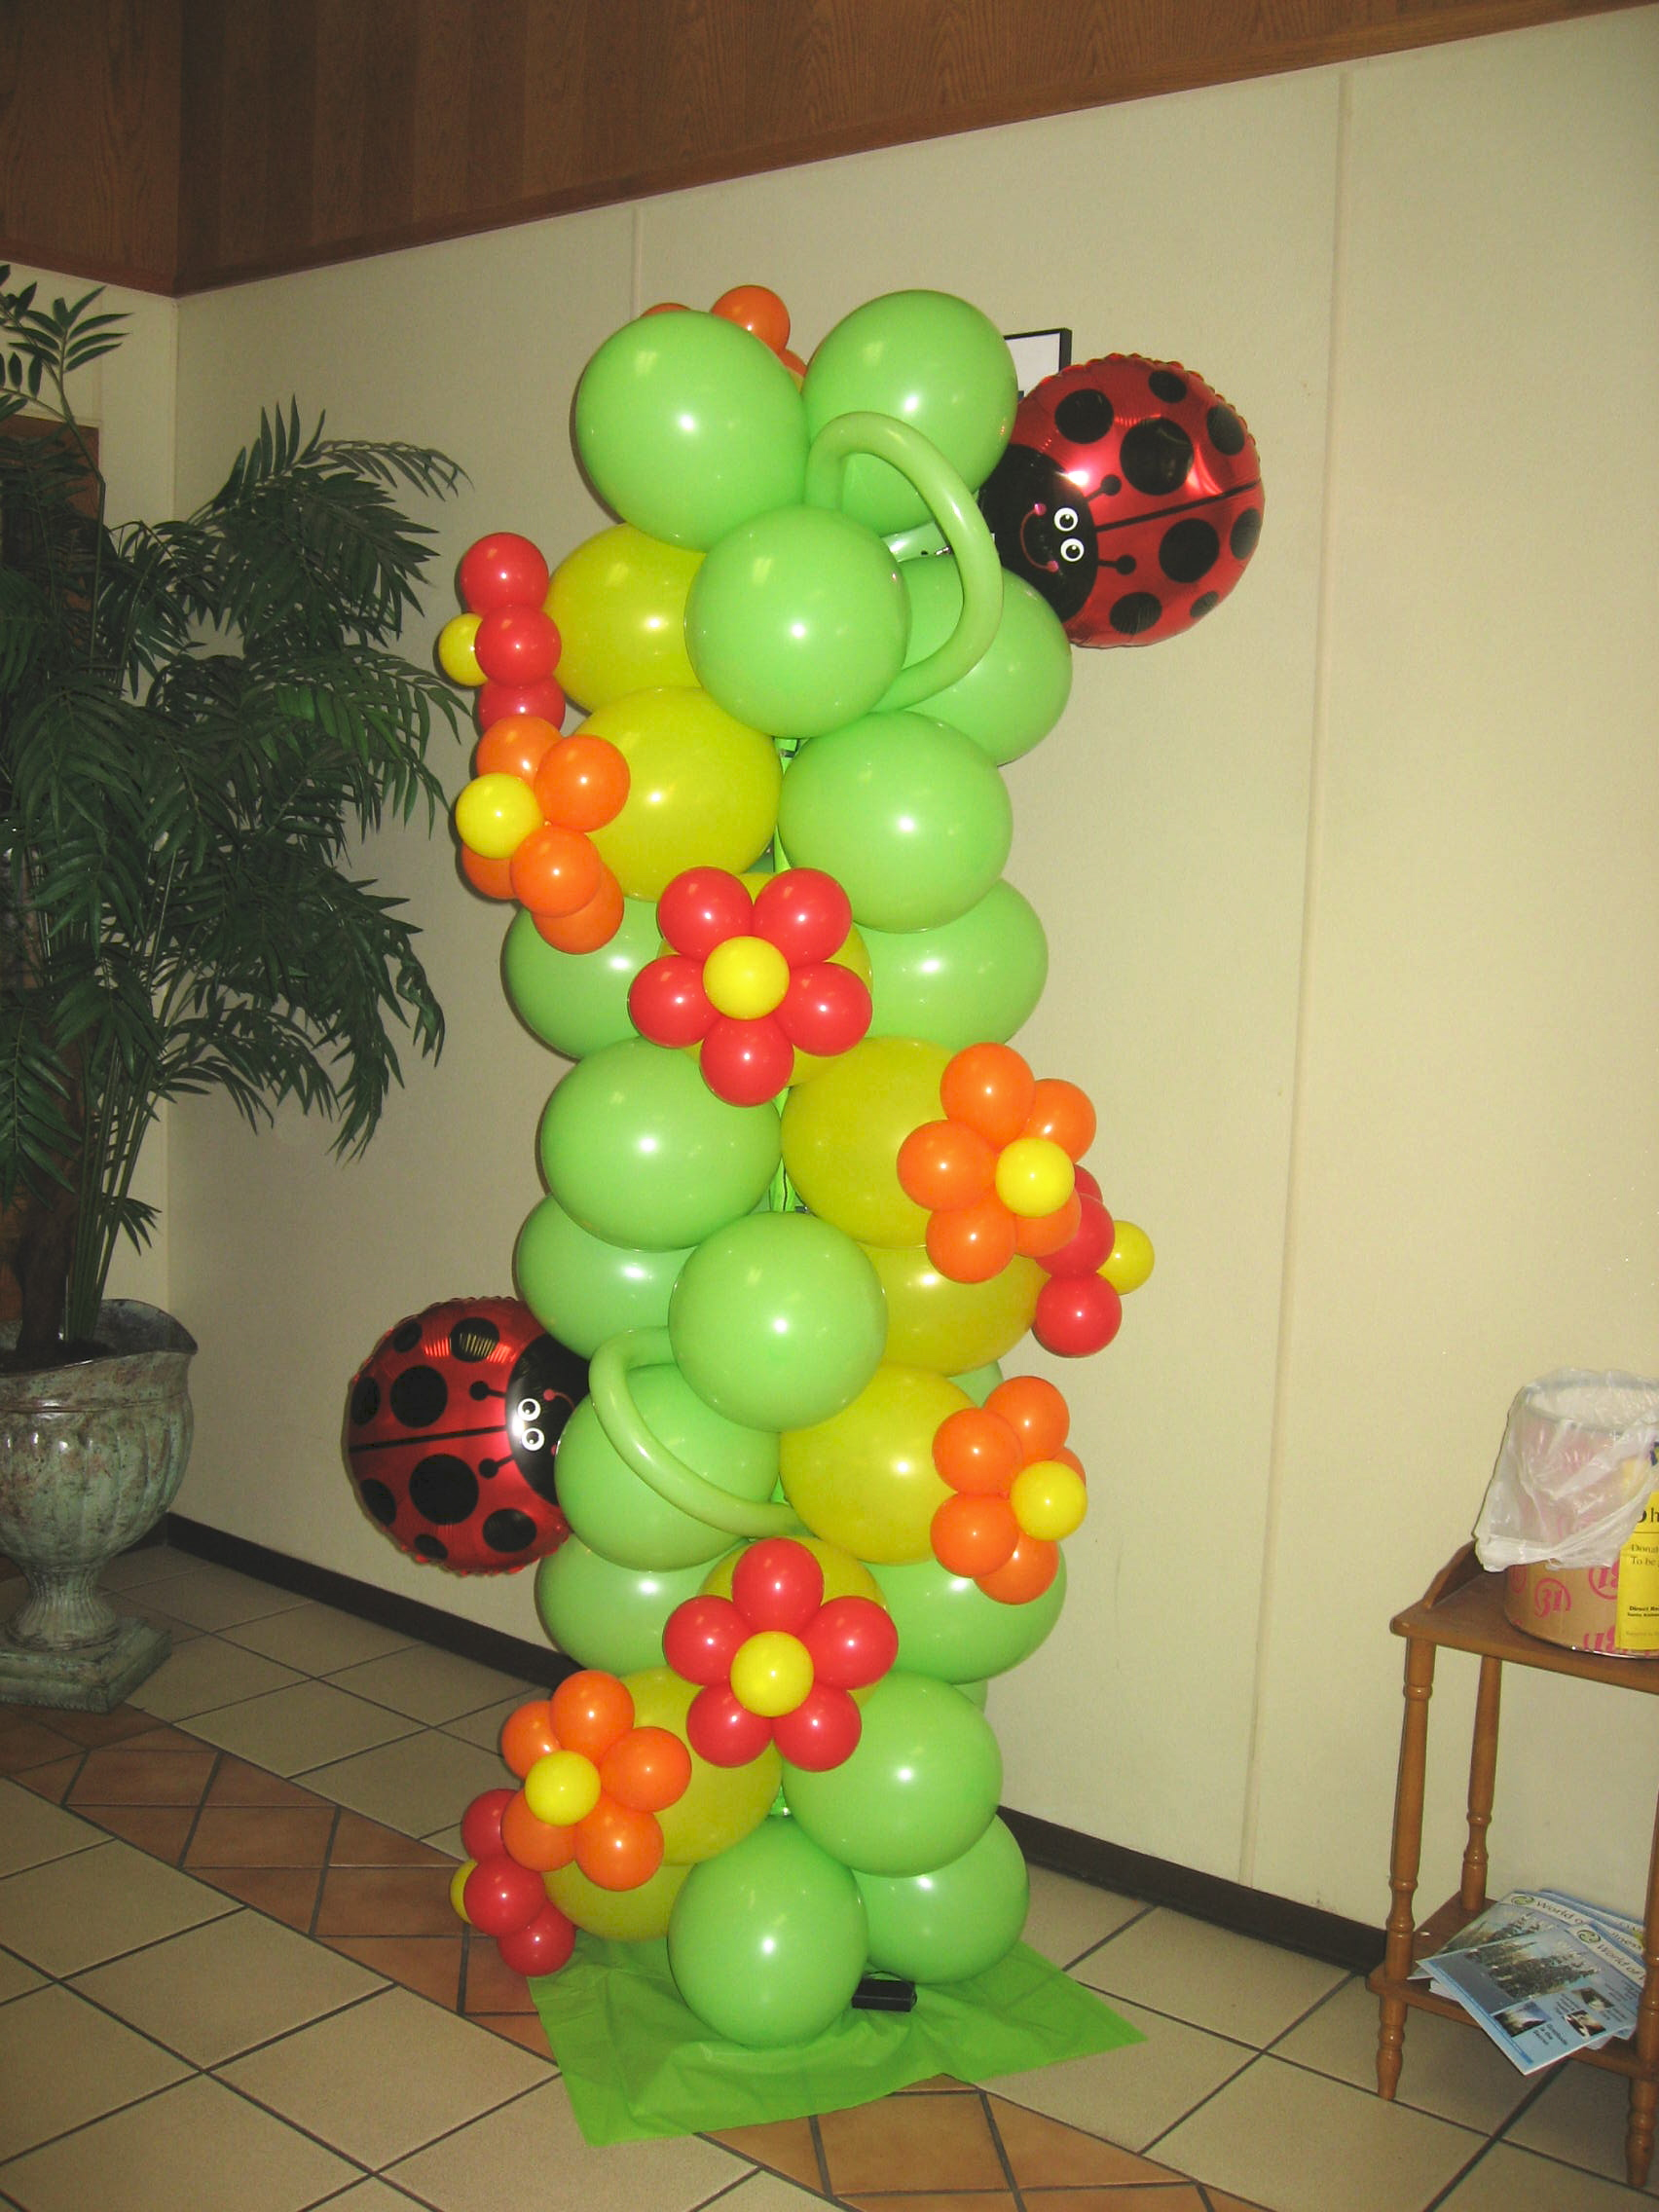 Balloon Decor Of Central California Columns